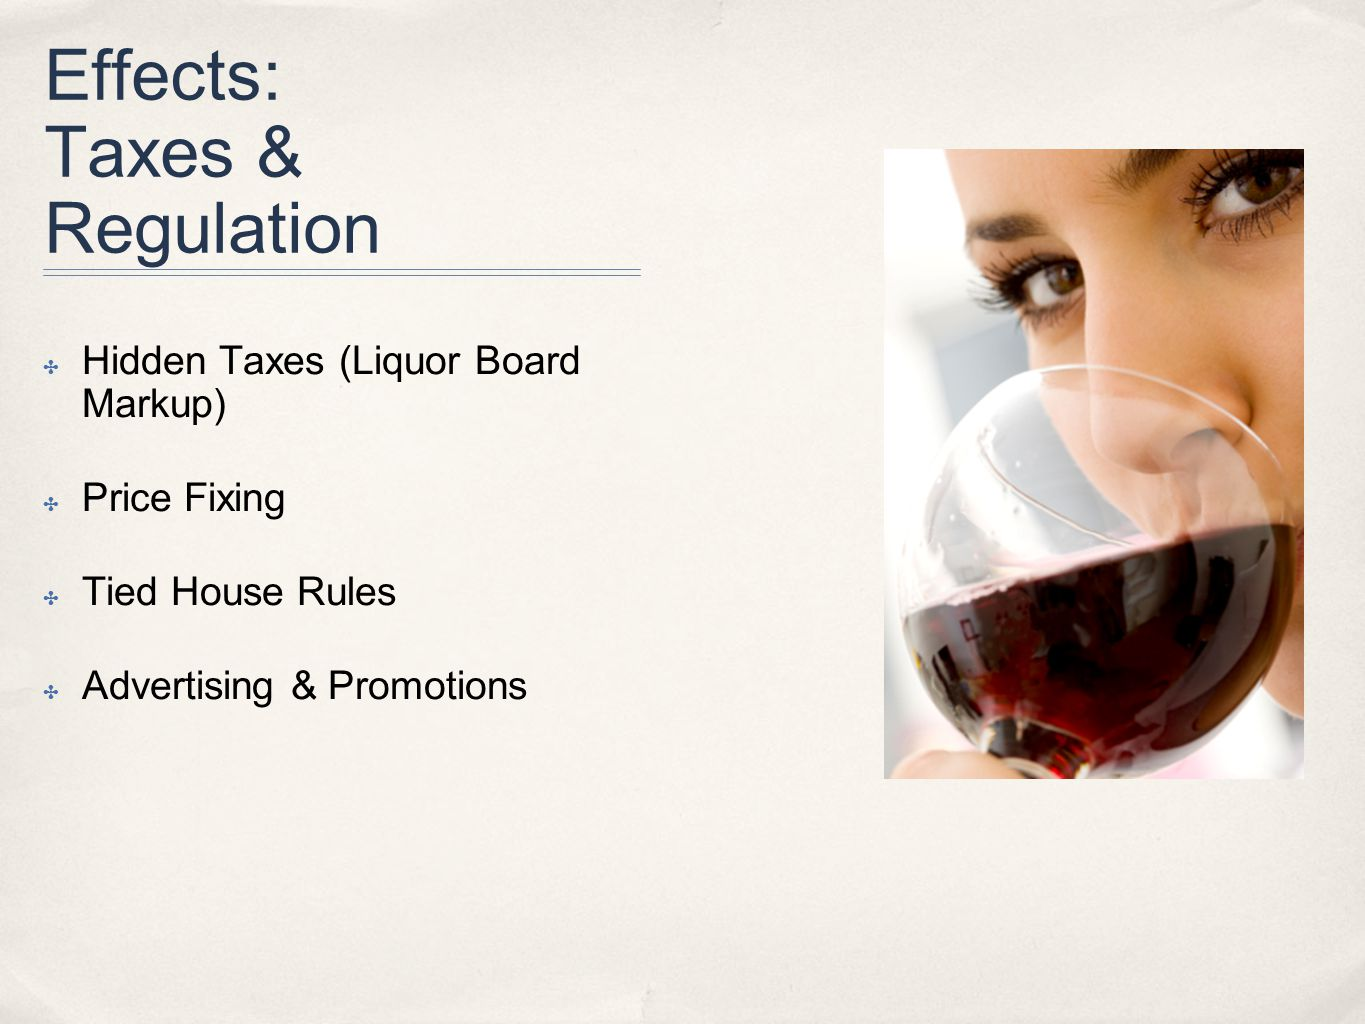 Effects: Taxes & Regulation ✤ Hidden Taxes (Liquor Board Markup) ✤ Price Fixing ✤ Tied House Rules ✤ Advertising & Promotions